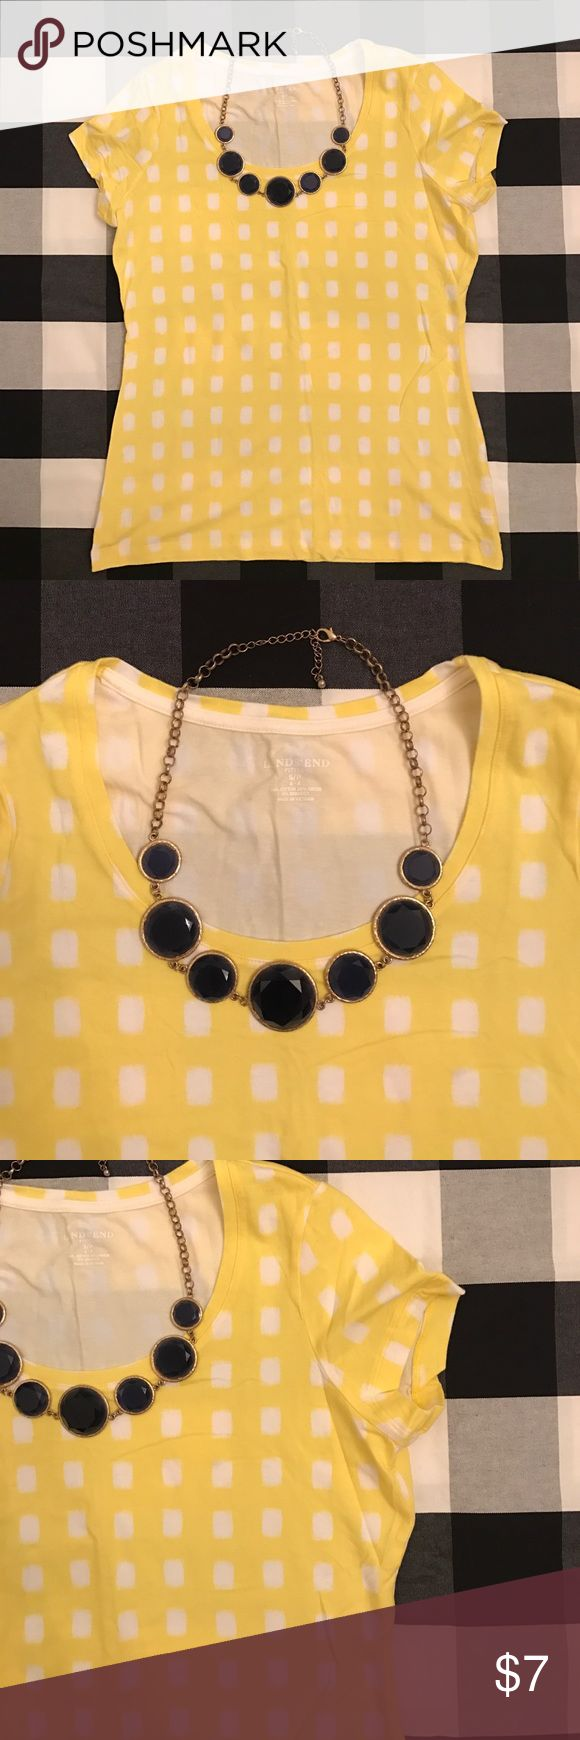 Lands End yellow checkered t-shirt Lands End women's fitted t-shirt in a fun summer print! Yellow and white large checkered pattern on a cotton blend. Brighten up your closet today!  All items from a smoke-free, pet-friendly home, laundered in All Free & Clear. Willing to negotiate and bundle. Ask me any questions! Lands' End Tops Tees - Short Sleeve